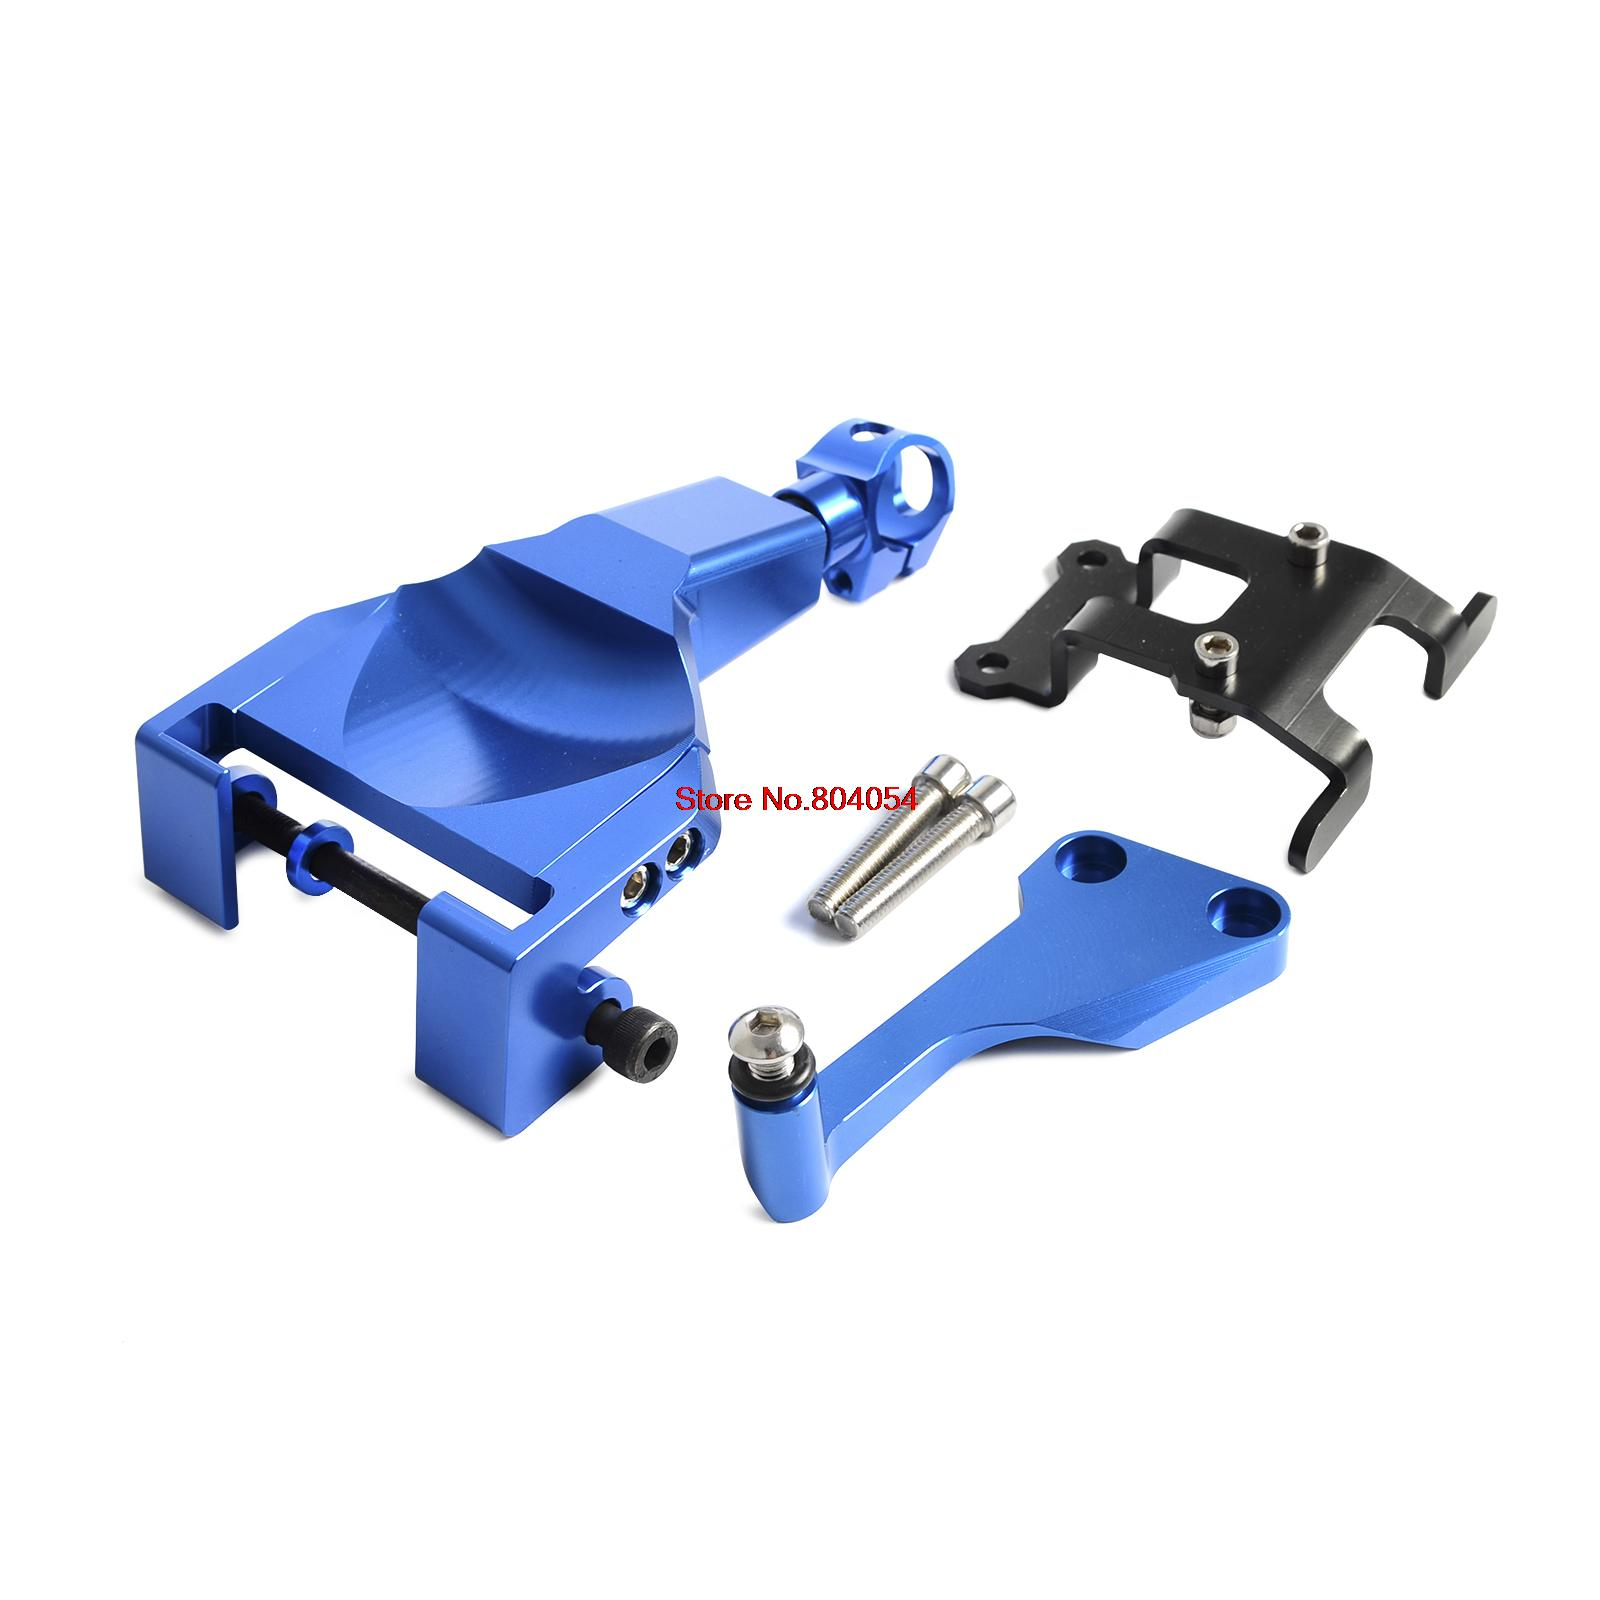 Blue Motorcycle Stablizer Damper Mounting Bracket Kit For Yamaha MT-07 MT07 MOTO CAGE 2014 2015 2016 motorcycle cnc aluminum windscreen windshield mounting bracket for yamaha mt07 mt 07 2014 2015 2016 red new style with logo